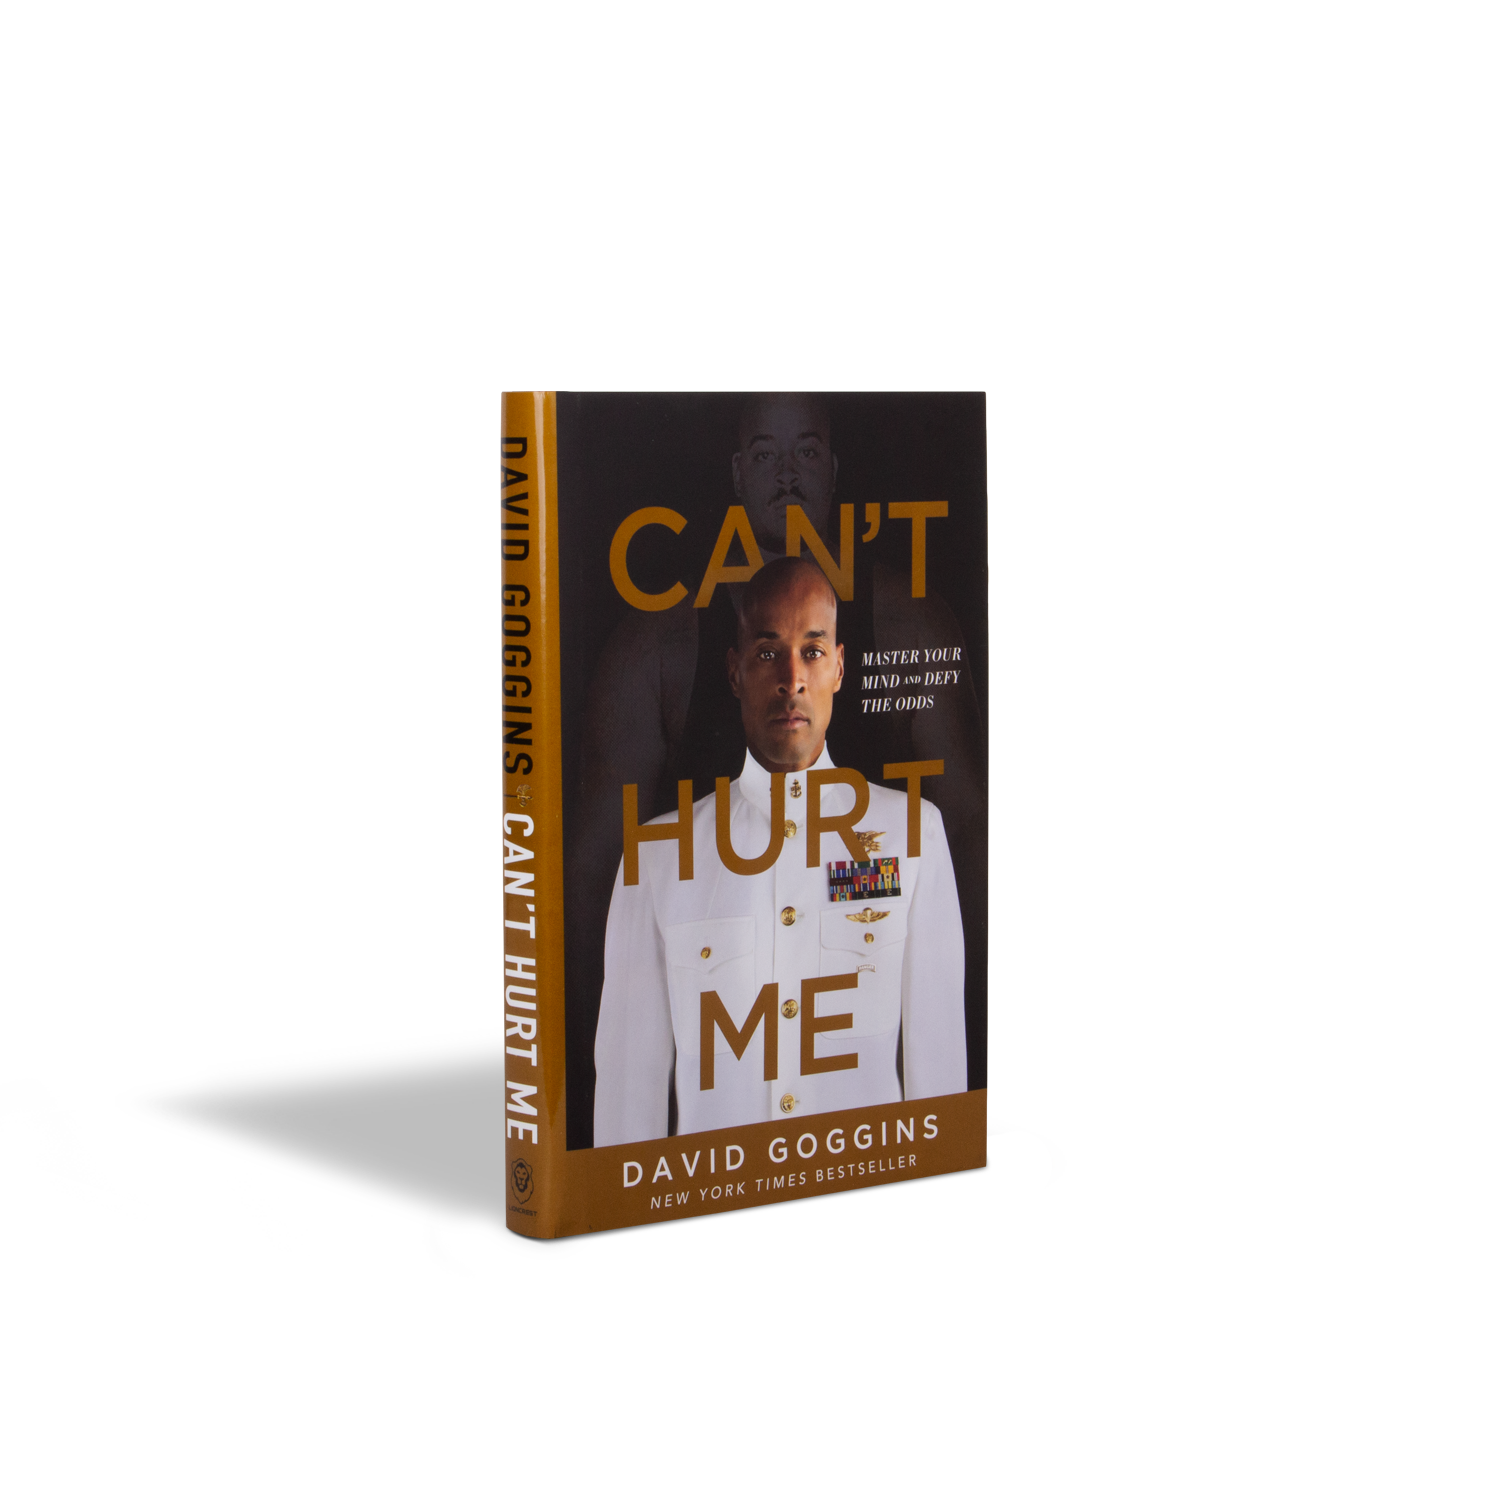 Autographed Hardcover Copy of Can't Hurt Me